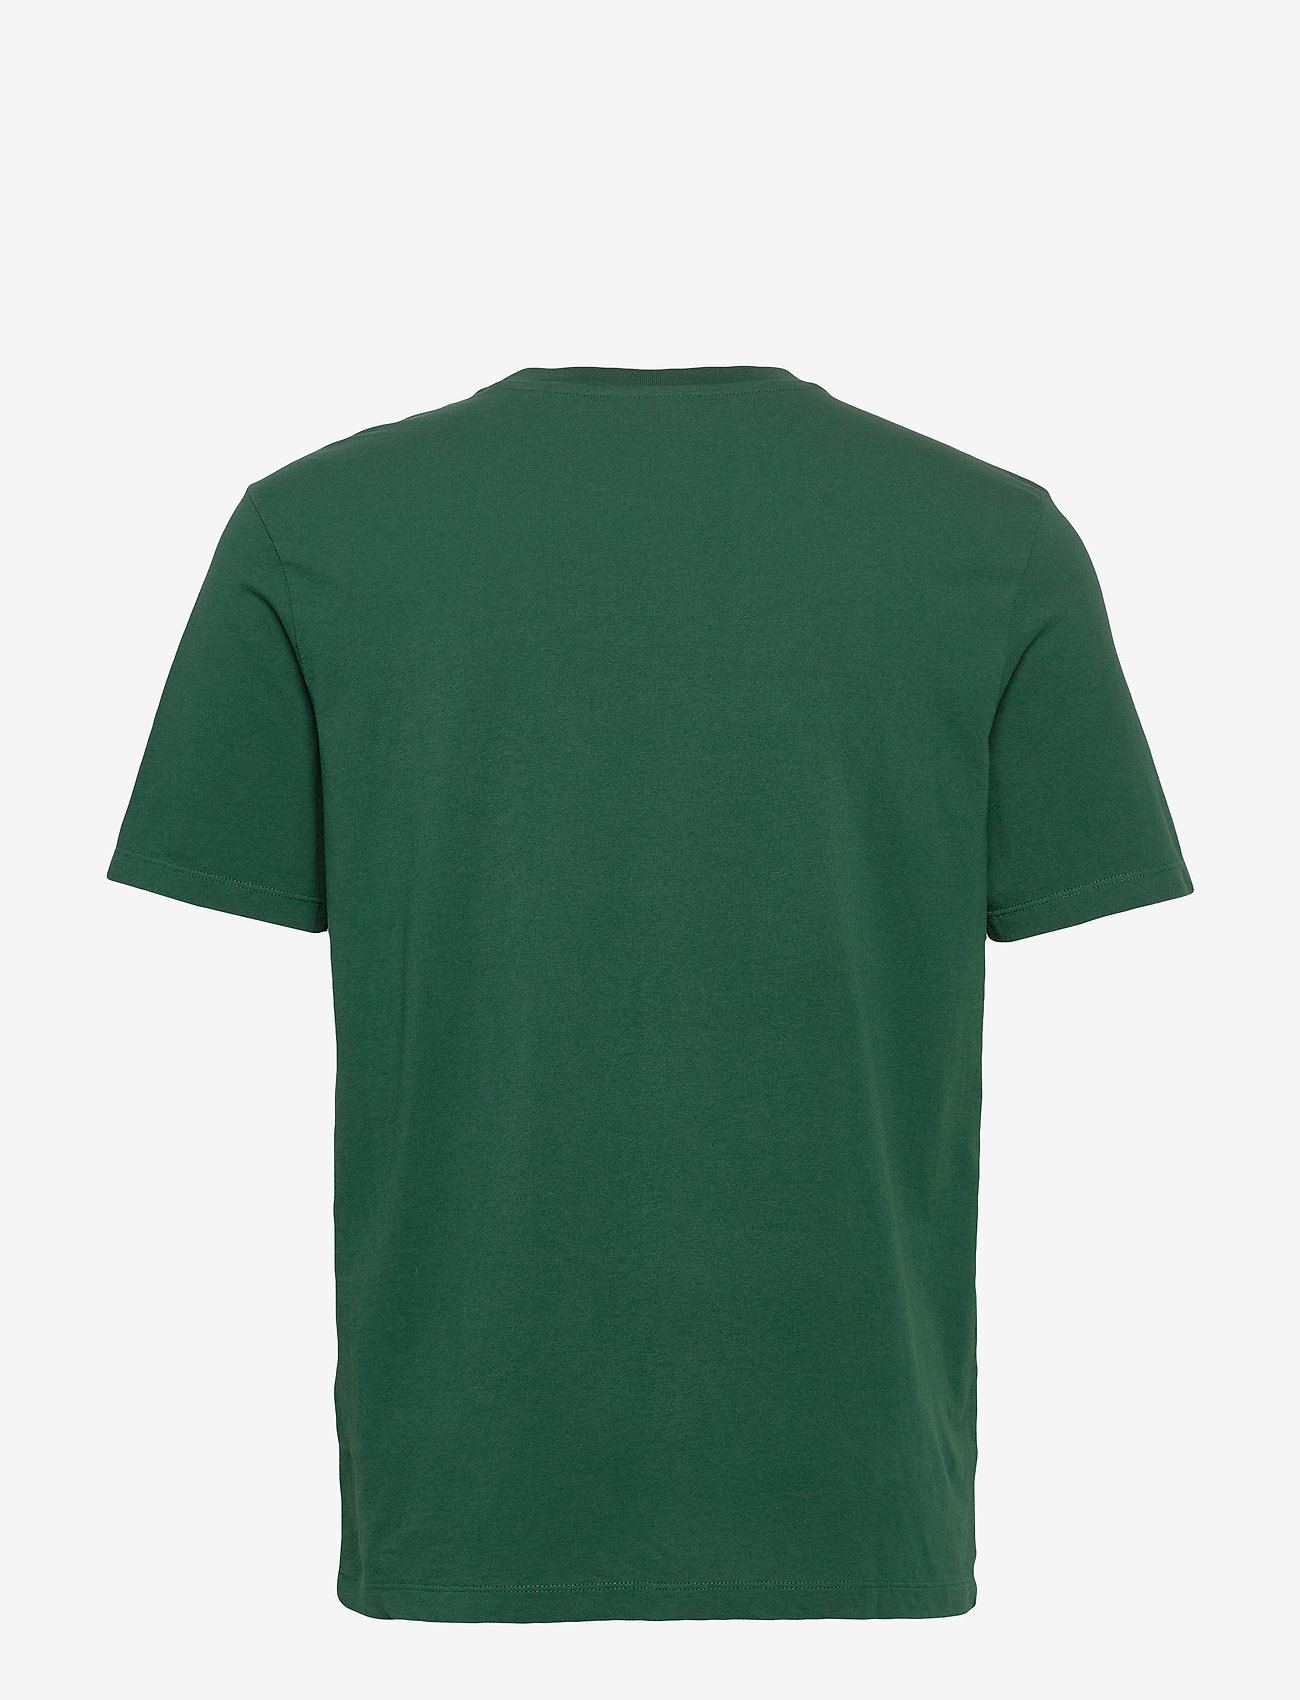 Scotch & Soda - Scotch & Soda crew neck logo tee - short-sleeved t-shirts - jungle green - 1